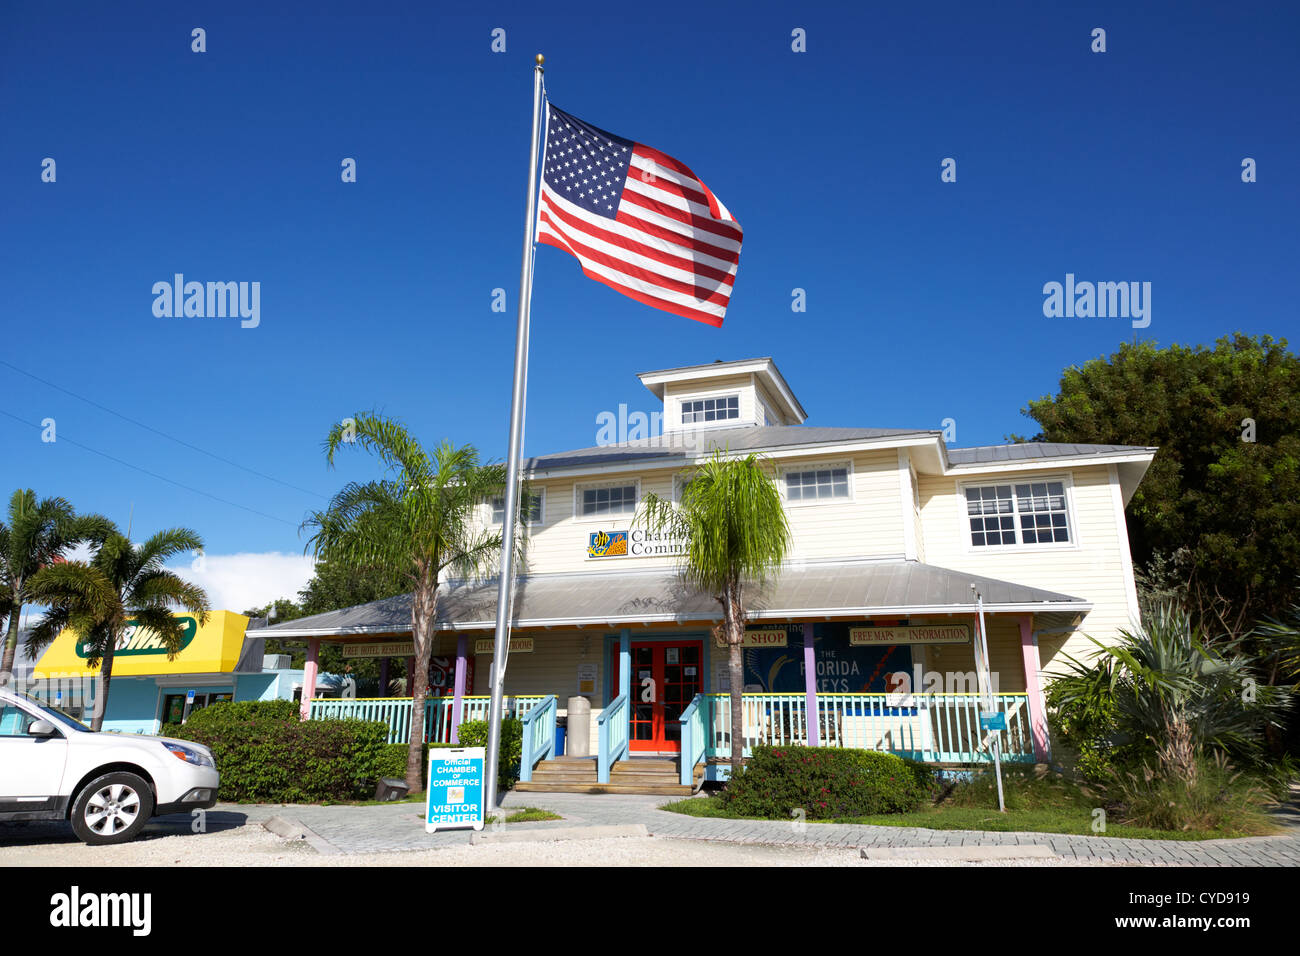 american flag on a flagpole outside the chamber of commerce building in key largo florida keys usa - Stock Image